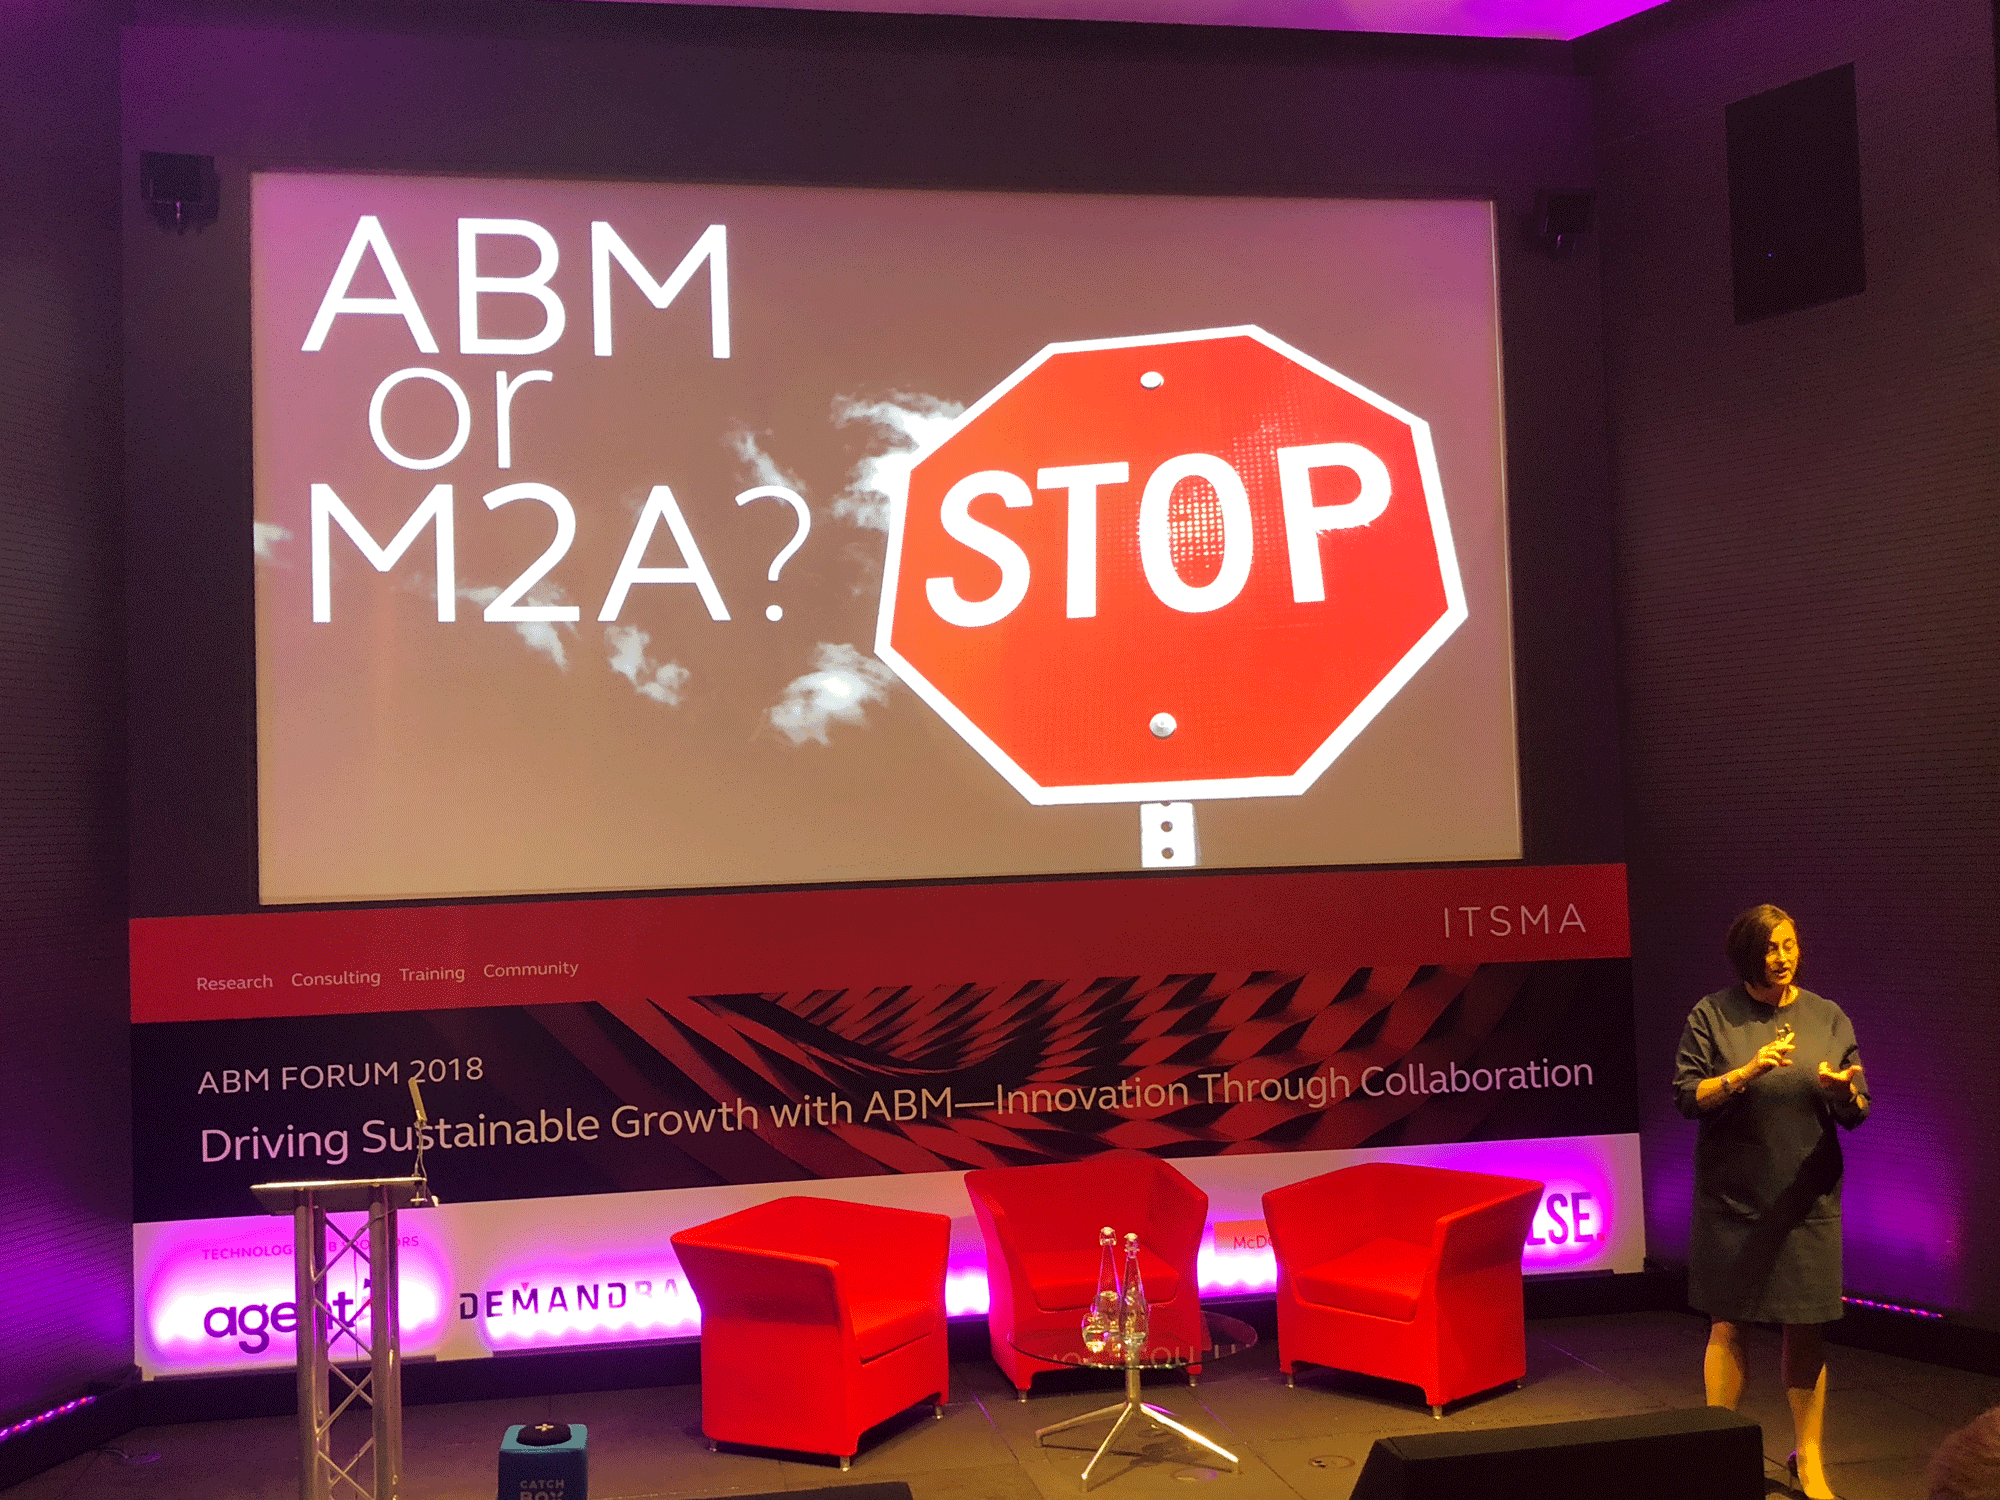 It's time for ABM to be true to its name